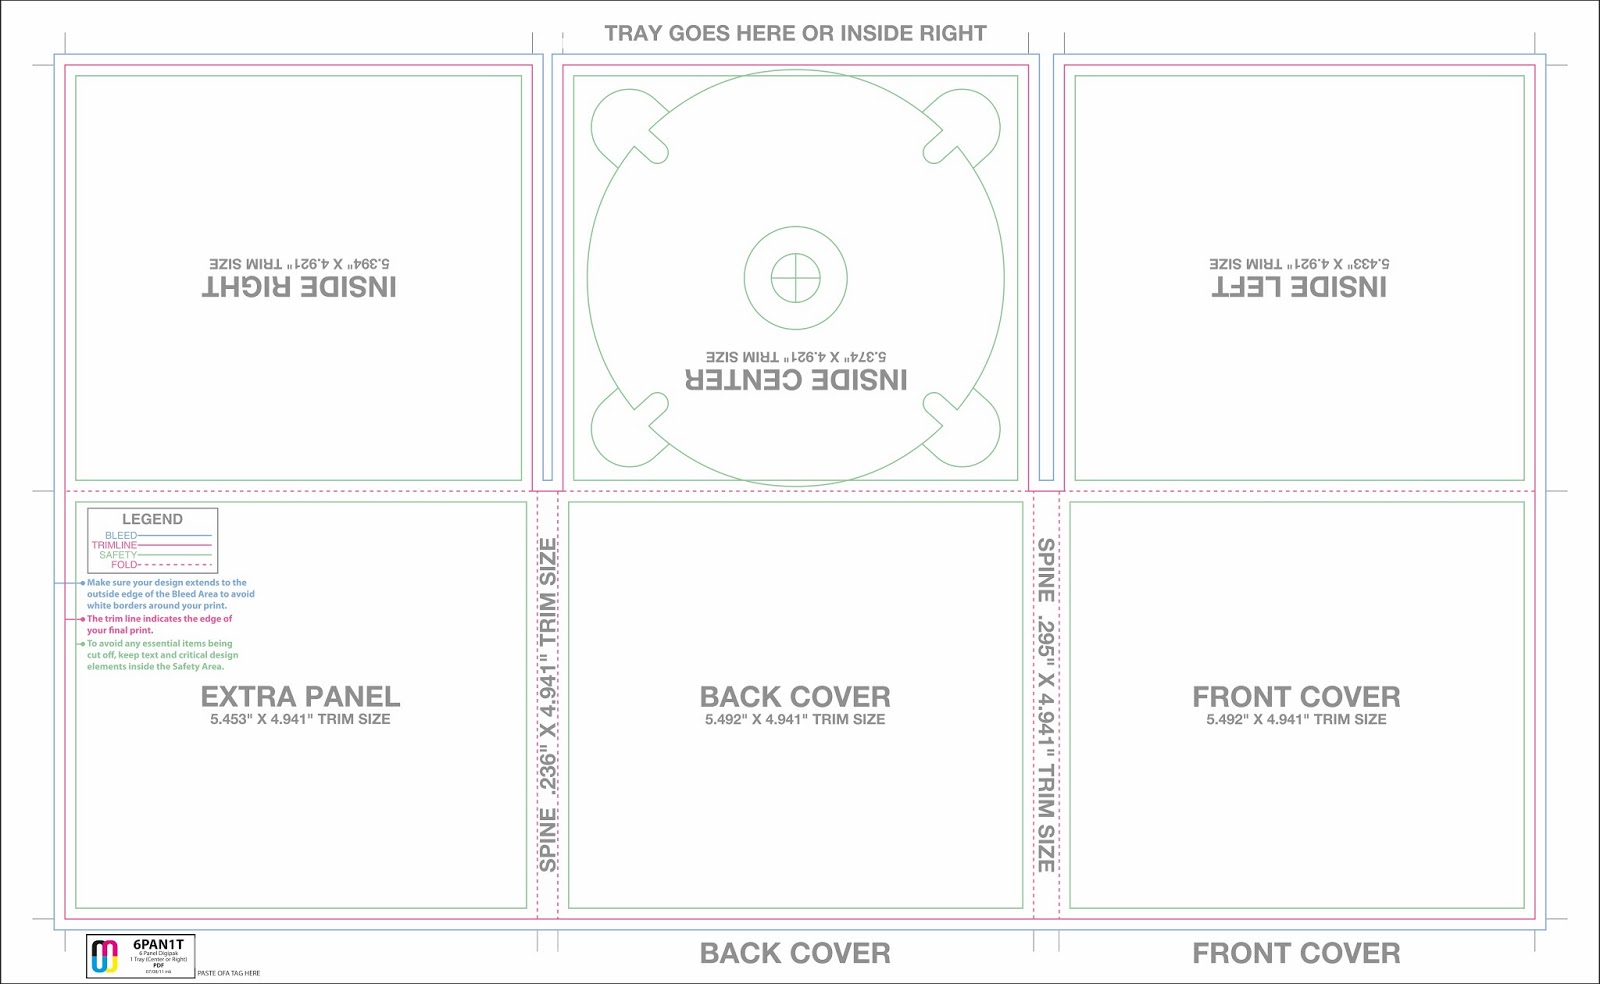 Charming 10 Best Resume Writers Huge 10 Steps To Writing A Resume Square 100 Square Pool Template 100th Day Hat Template Youthful 1099 Pay Stub Template Pink1099 Template Word 16: September 2015